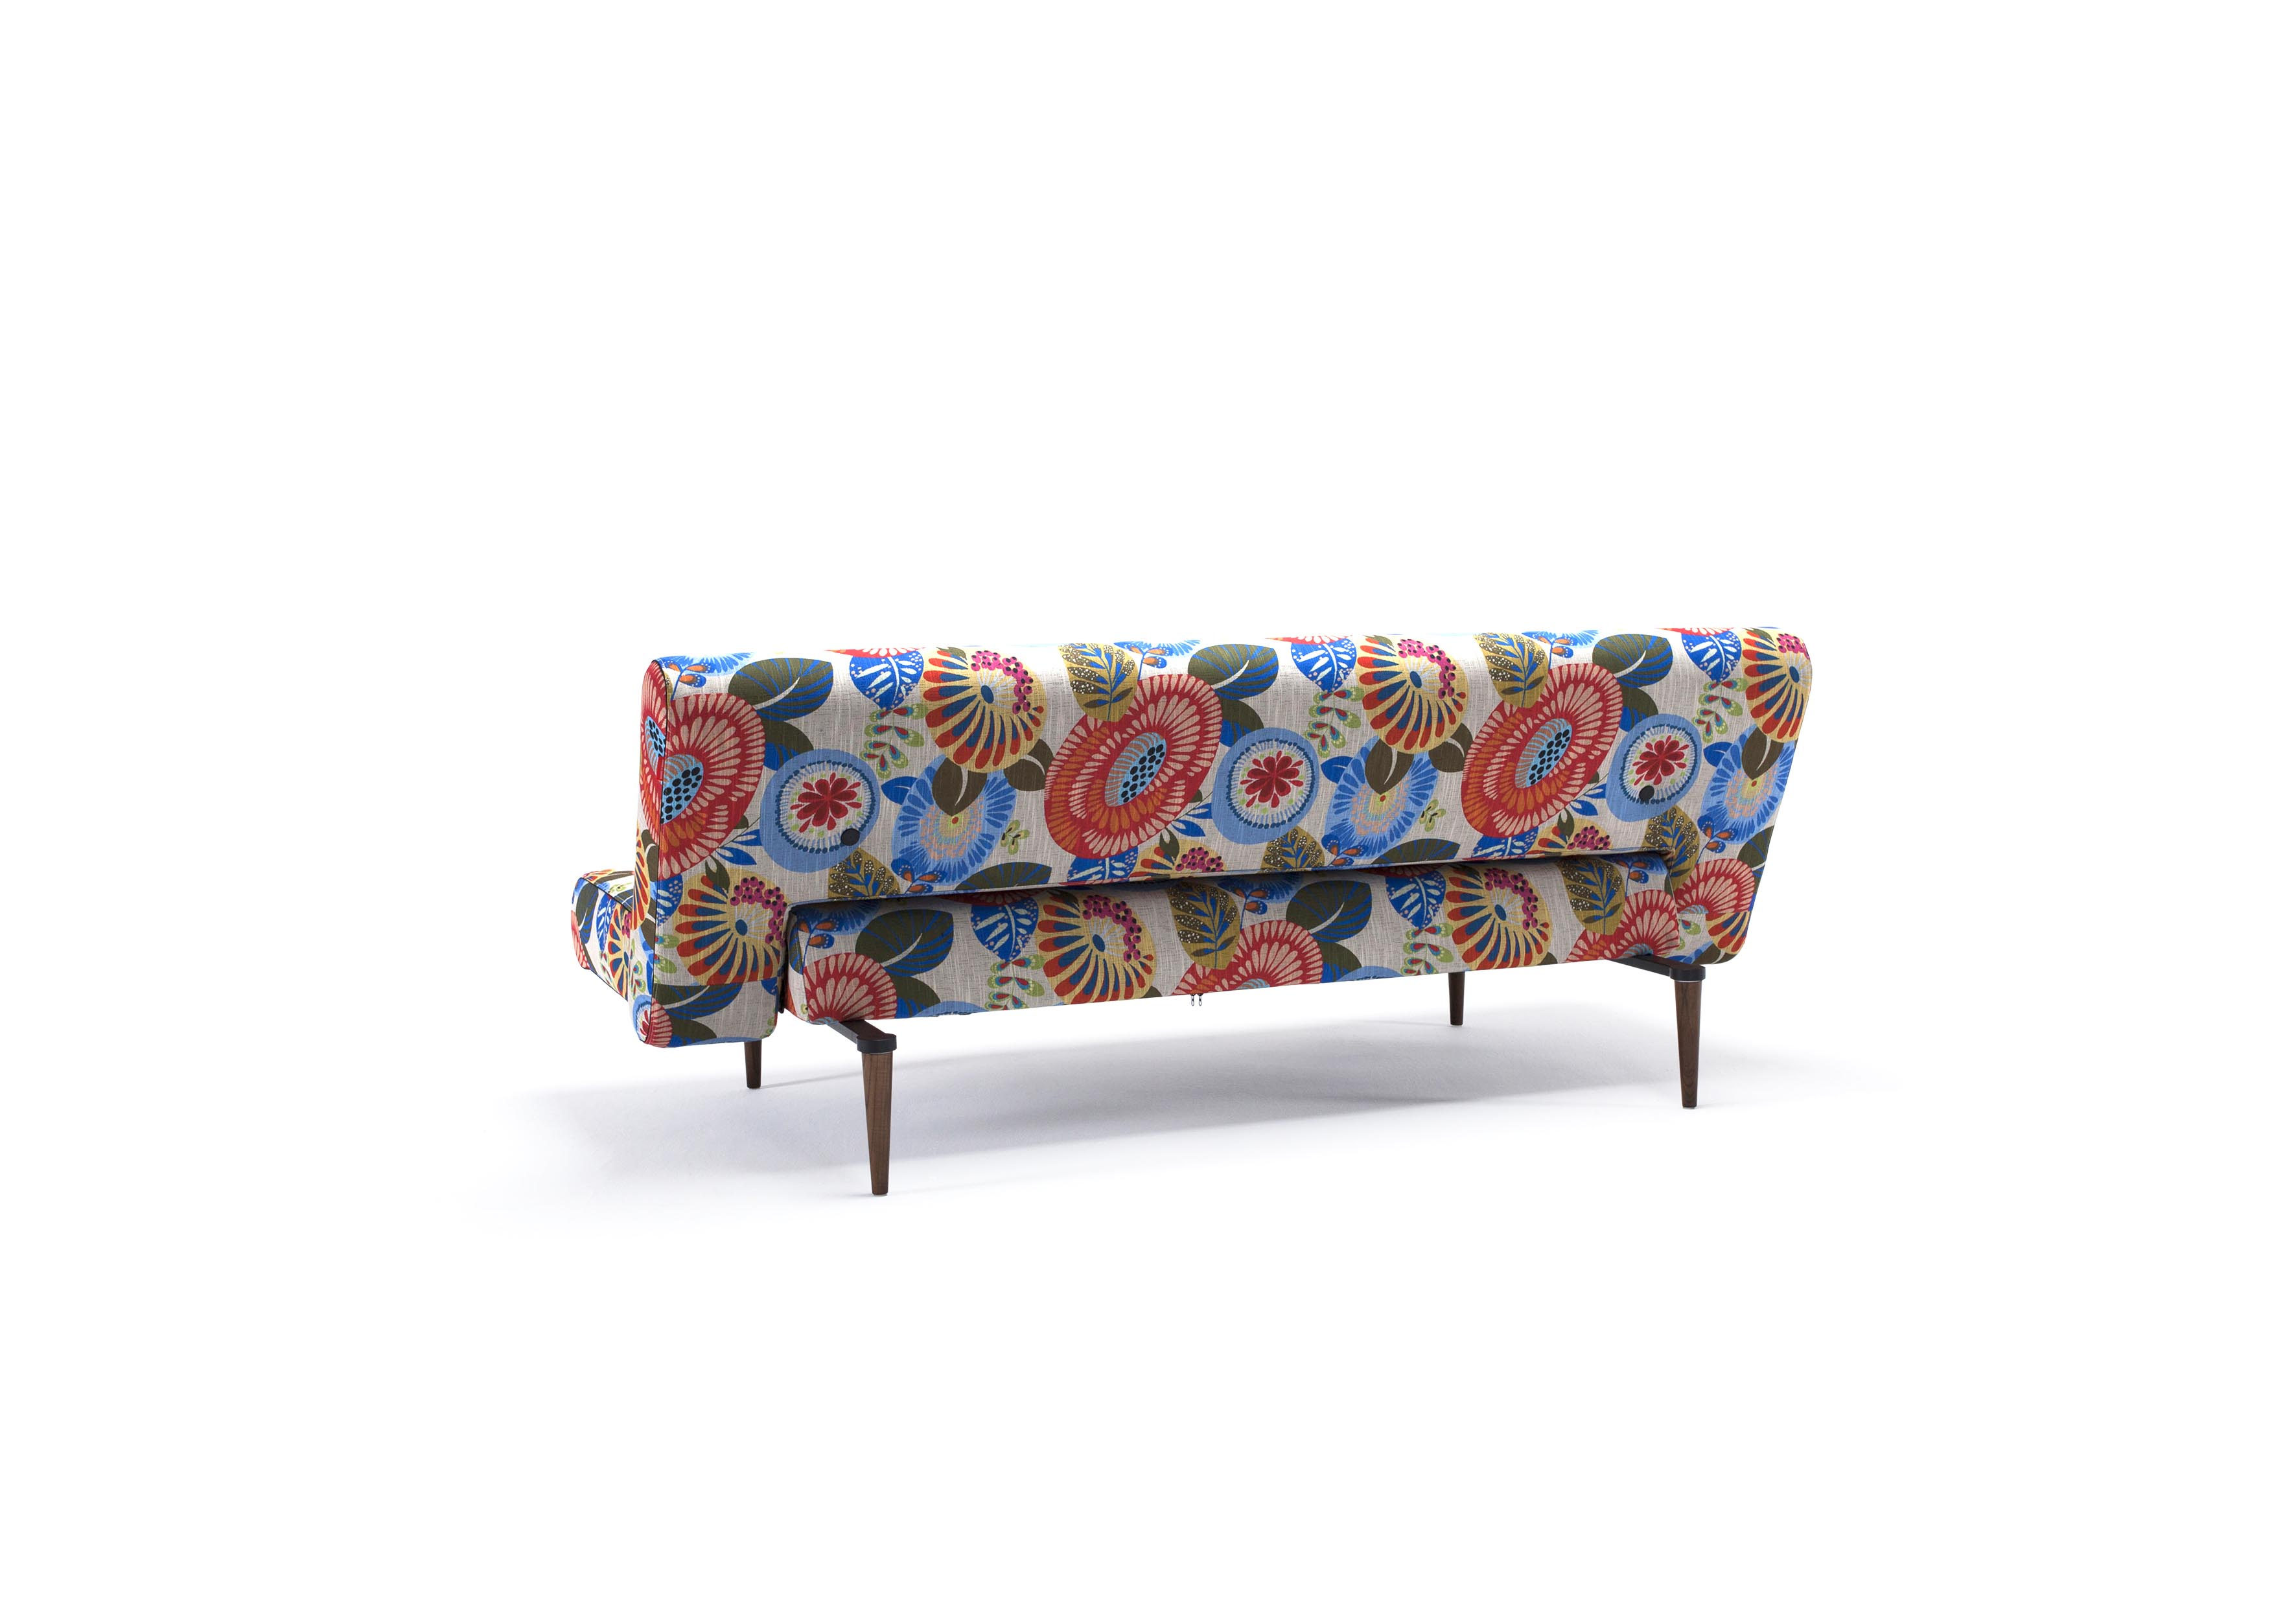 Unfurl Sofa Bed Wild Flower Tropical By Innovation